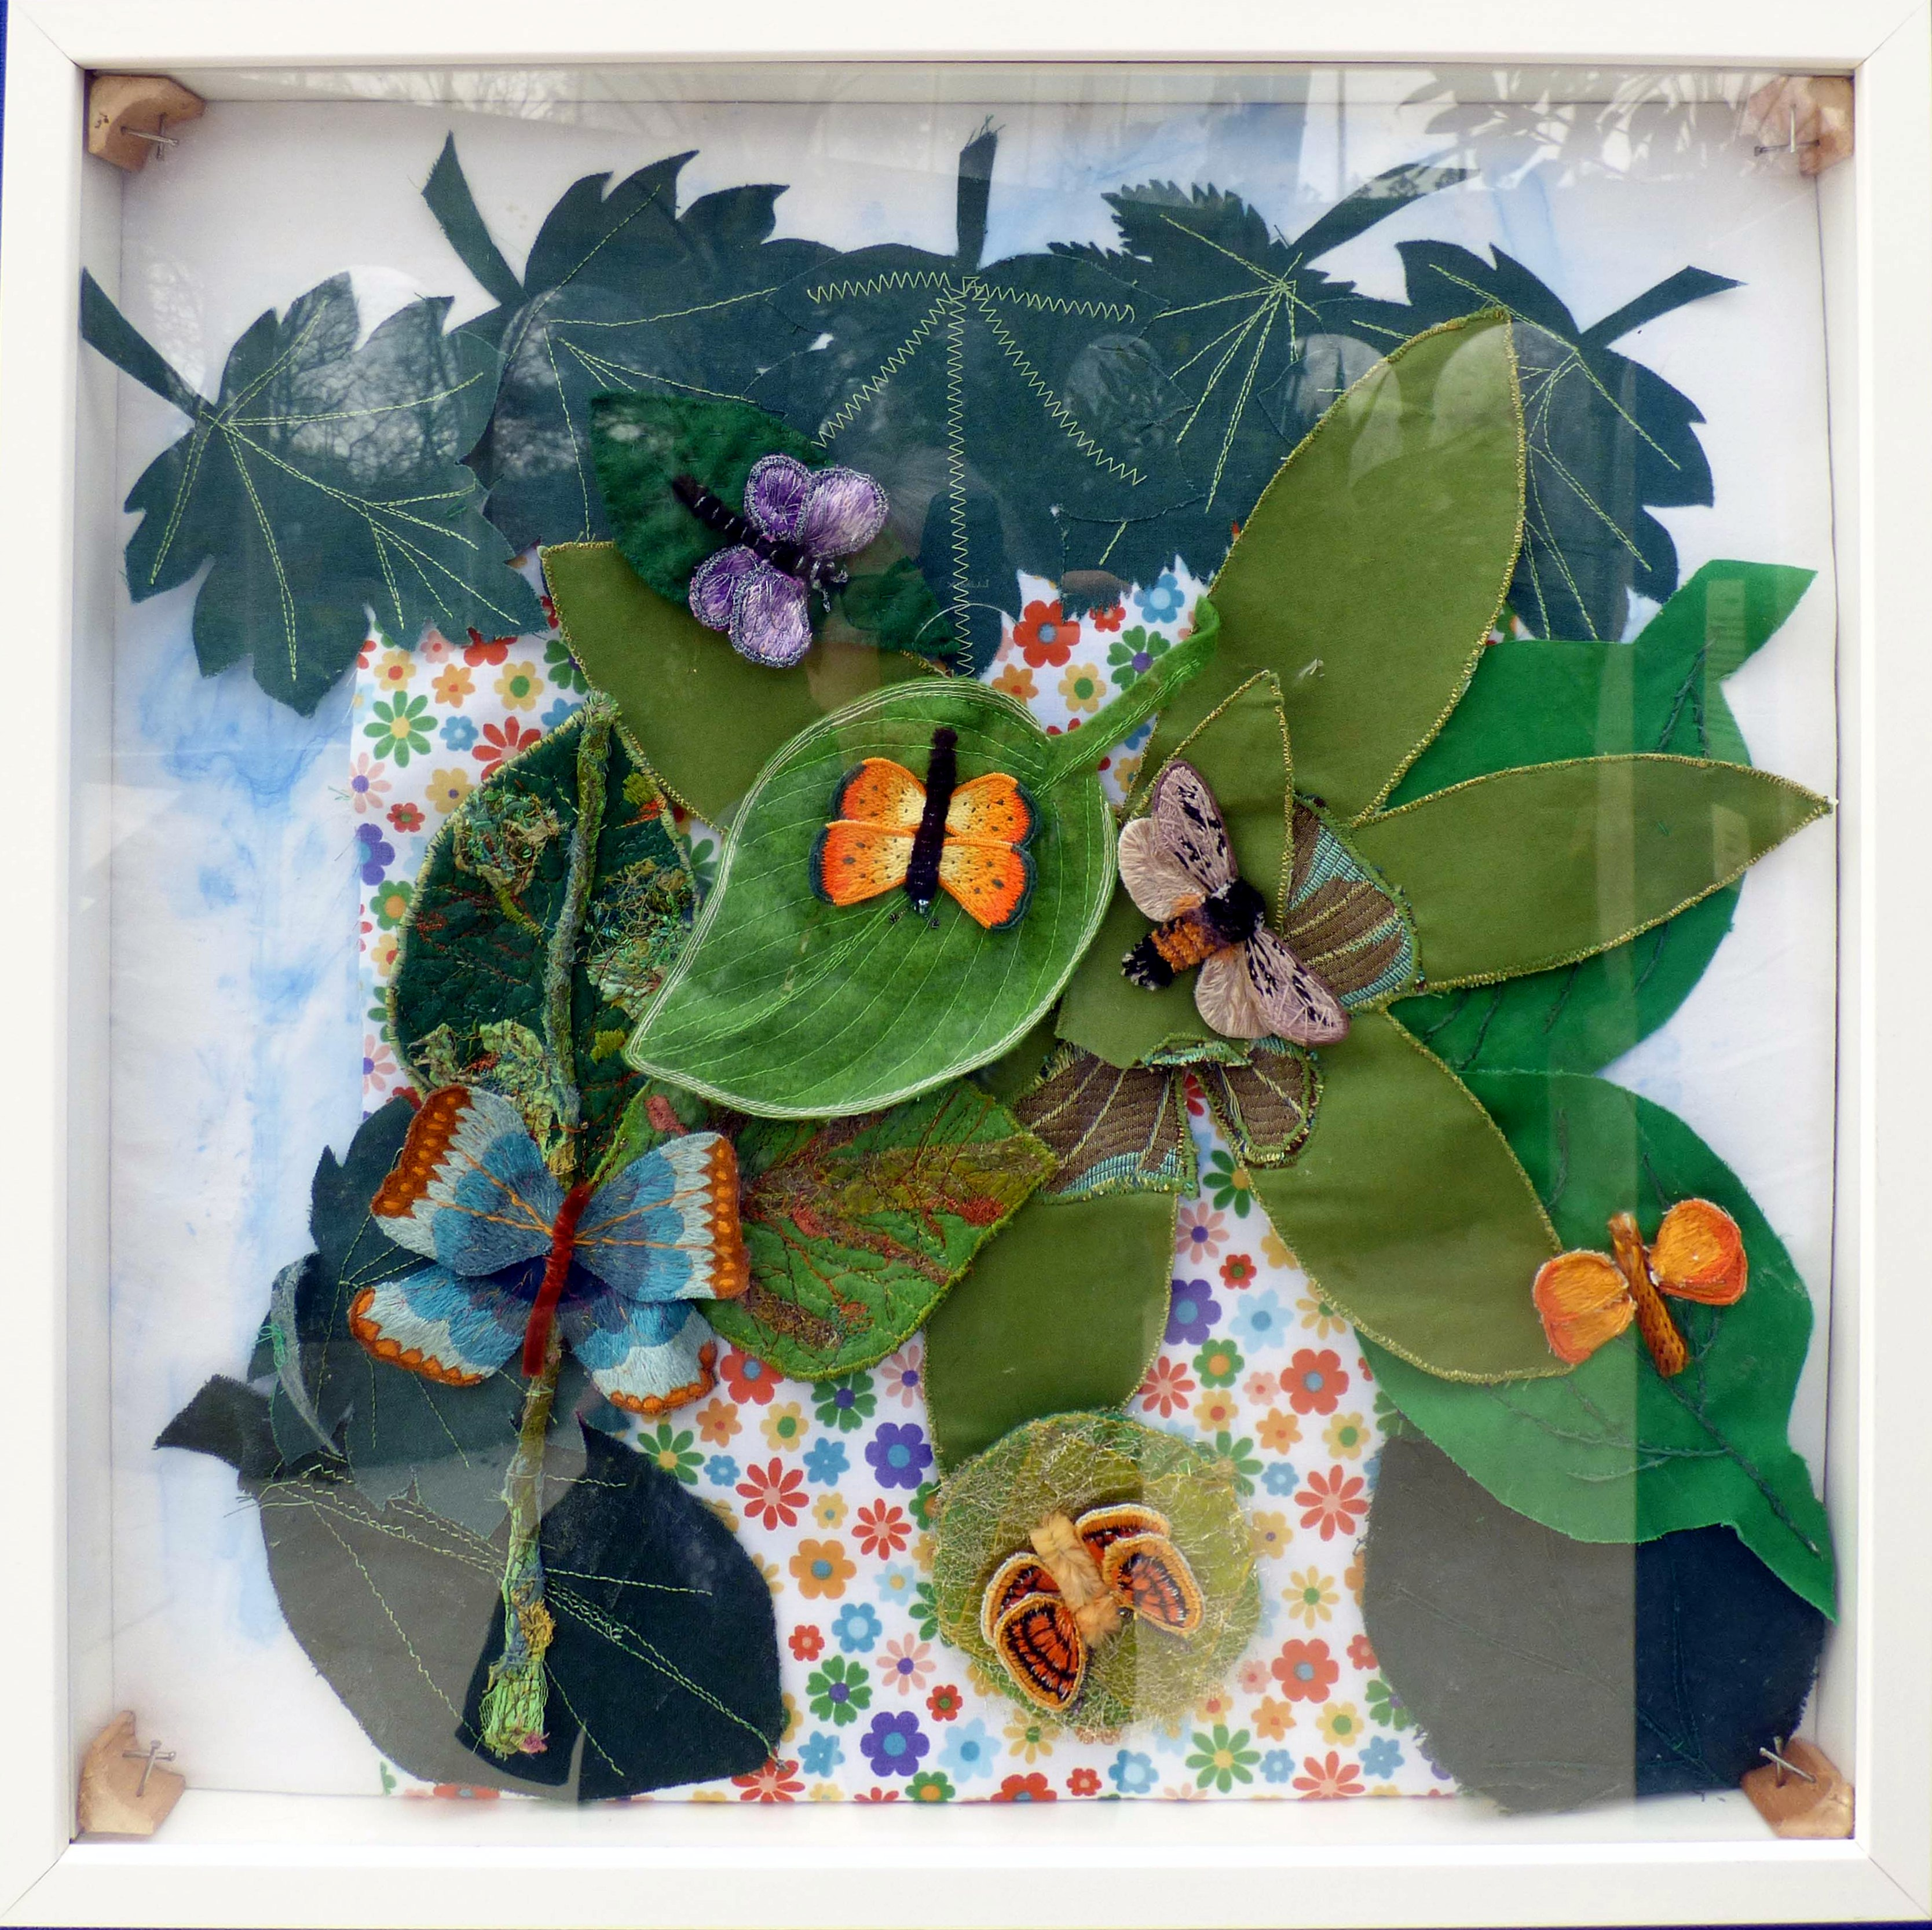 LEPIDOPTERA CASE, Endeavour exhibition at Sefton Park Palm House 2019. Butterflies by Vicky Williams, Brenda Muller, Pauline Staples, Michele King, Karen Scott and Mal Ralston